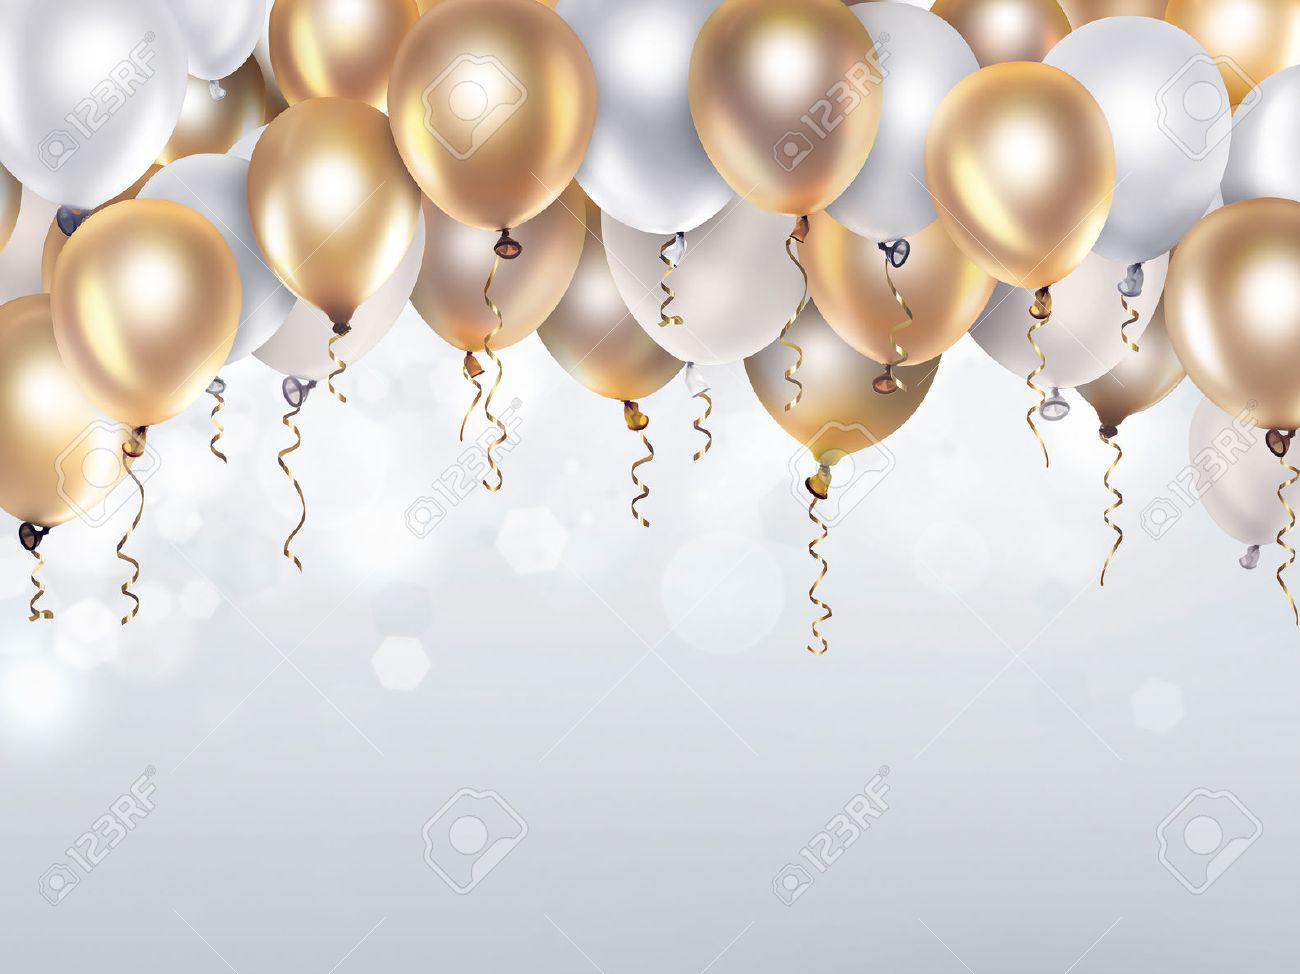 festive background with gold and white balloons stock photo picture